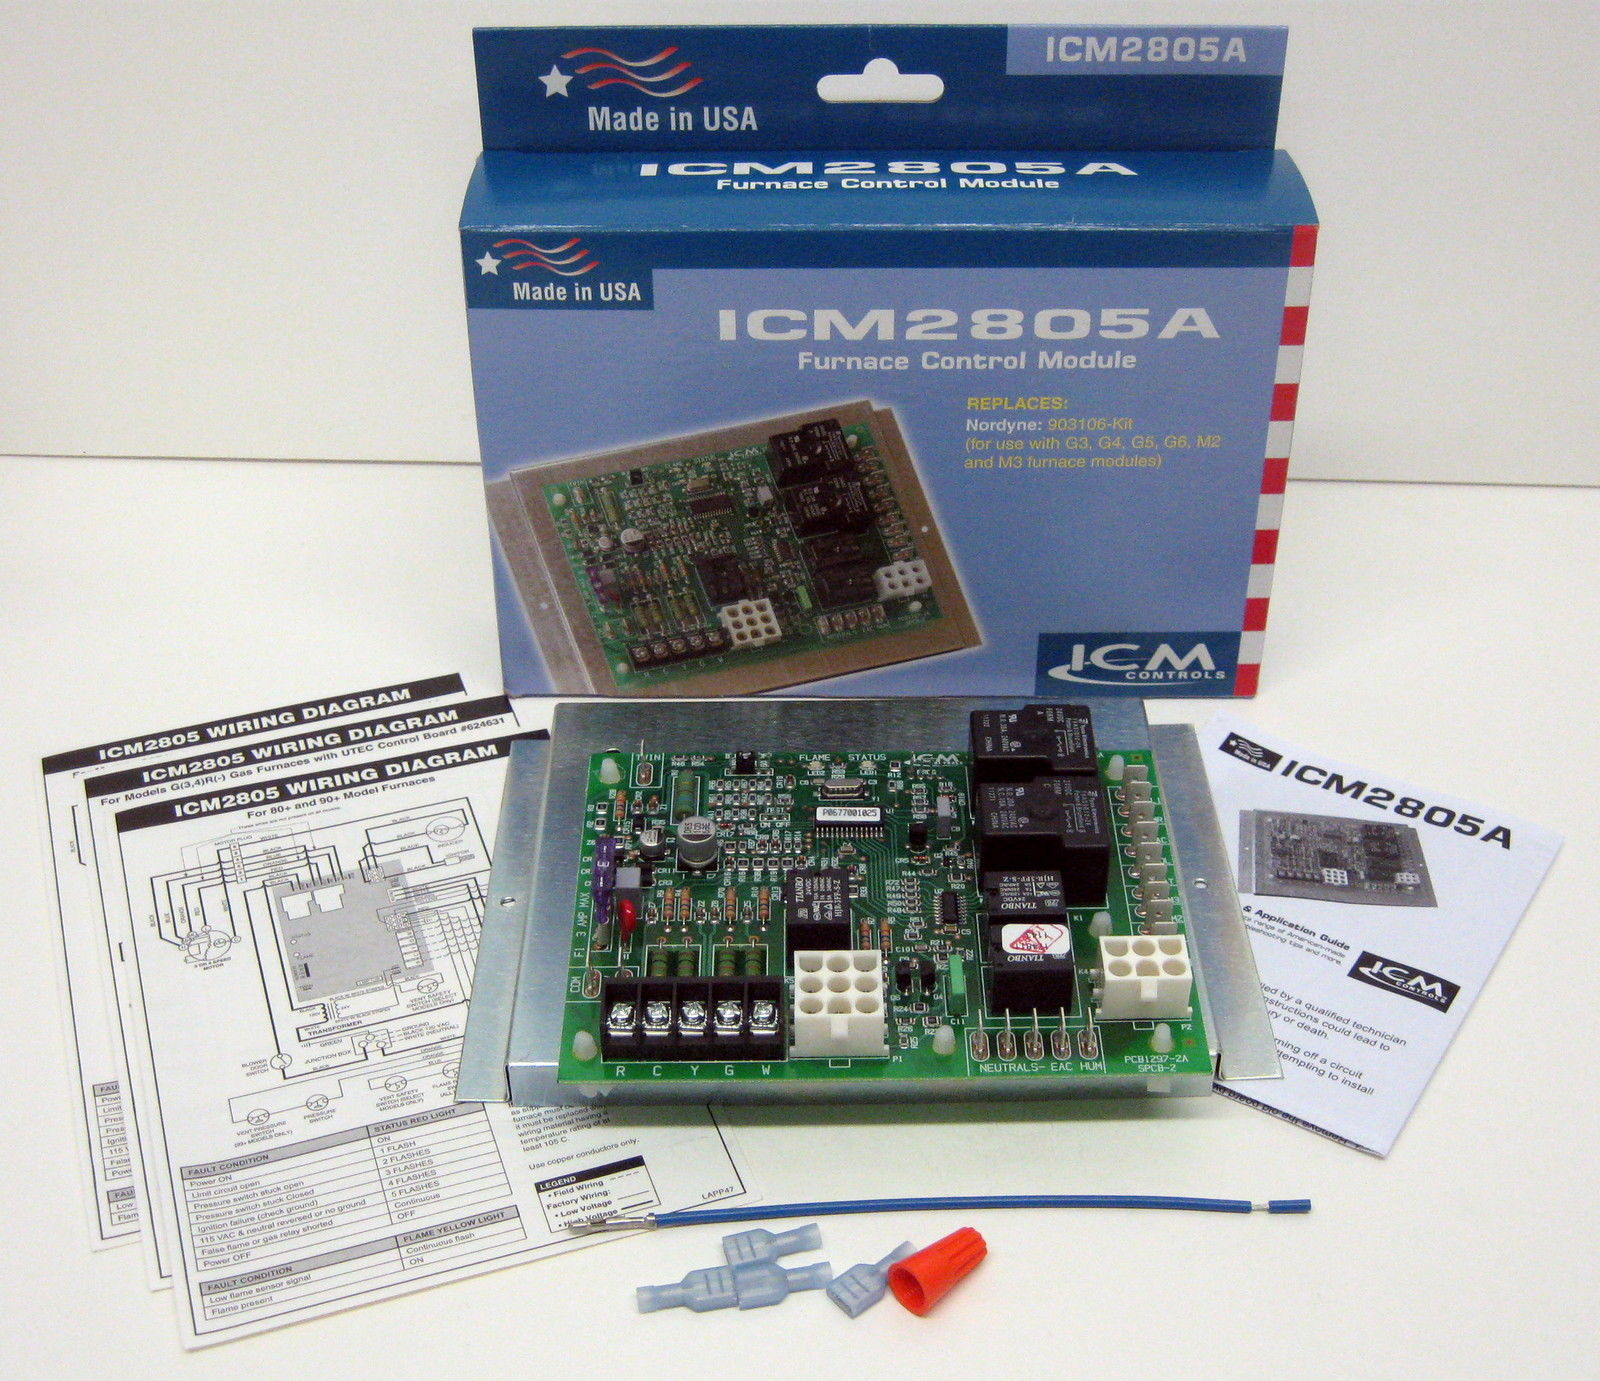 Icm2805a Icm Furnace Control Board For Nordyne Intertherm Miller Air Conditioner Wiring Diagram 903106 624631 B